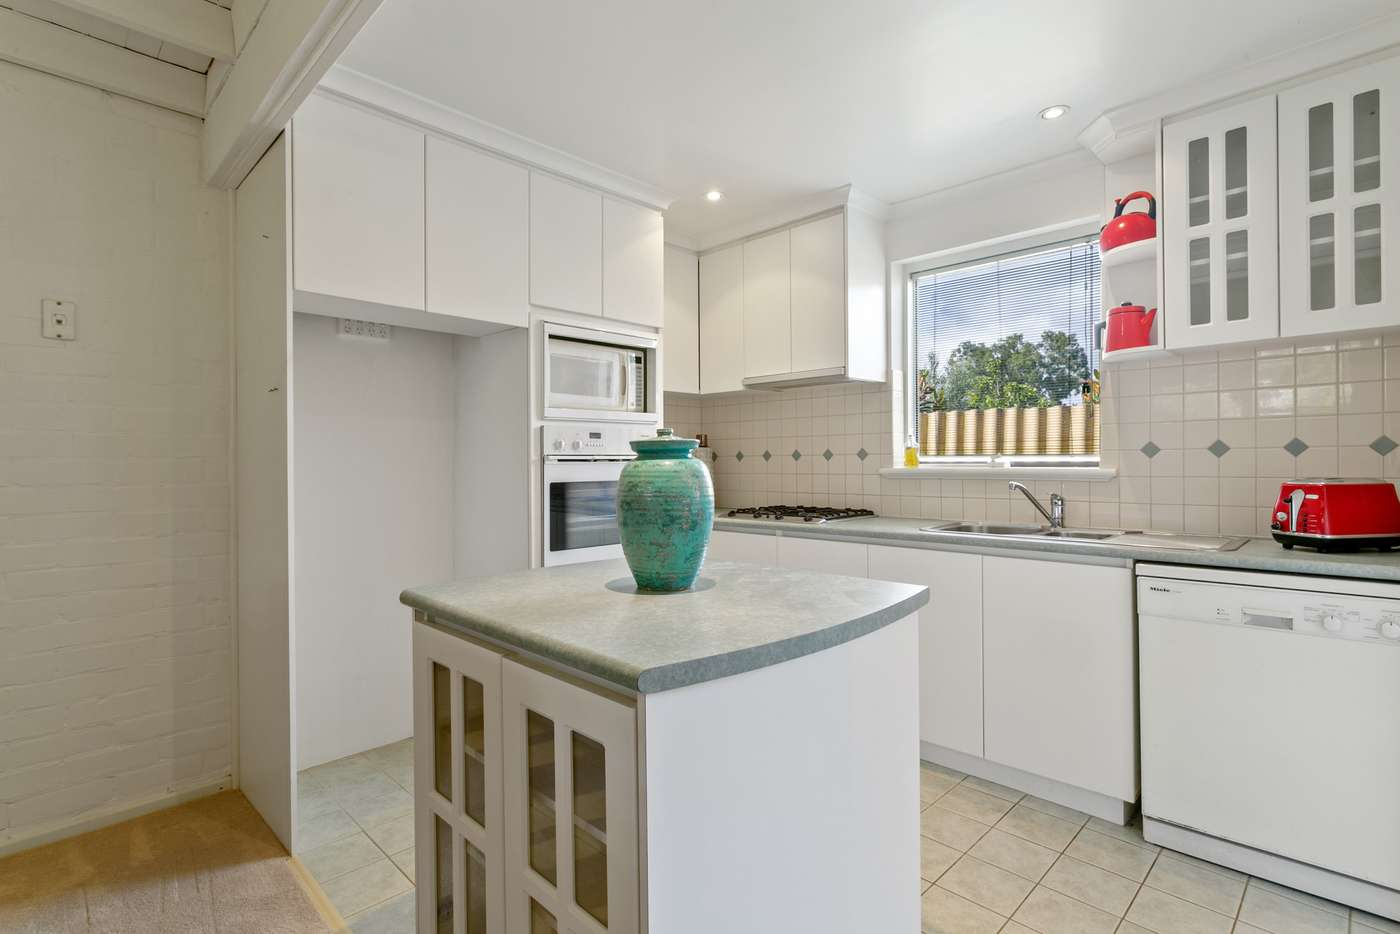 Fifth view of Homely house listing, 1/28 Violet Grove, Shenton Park WA 6008